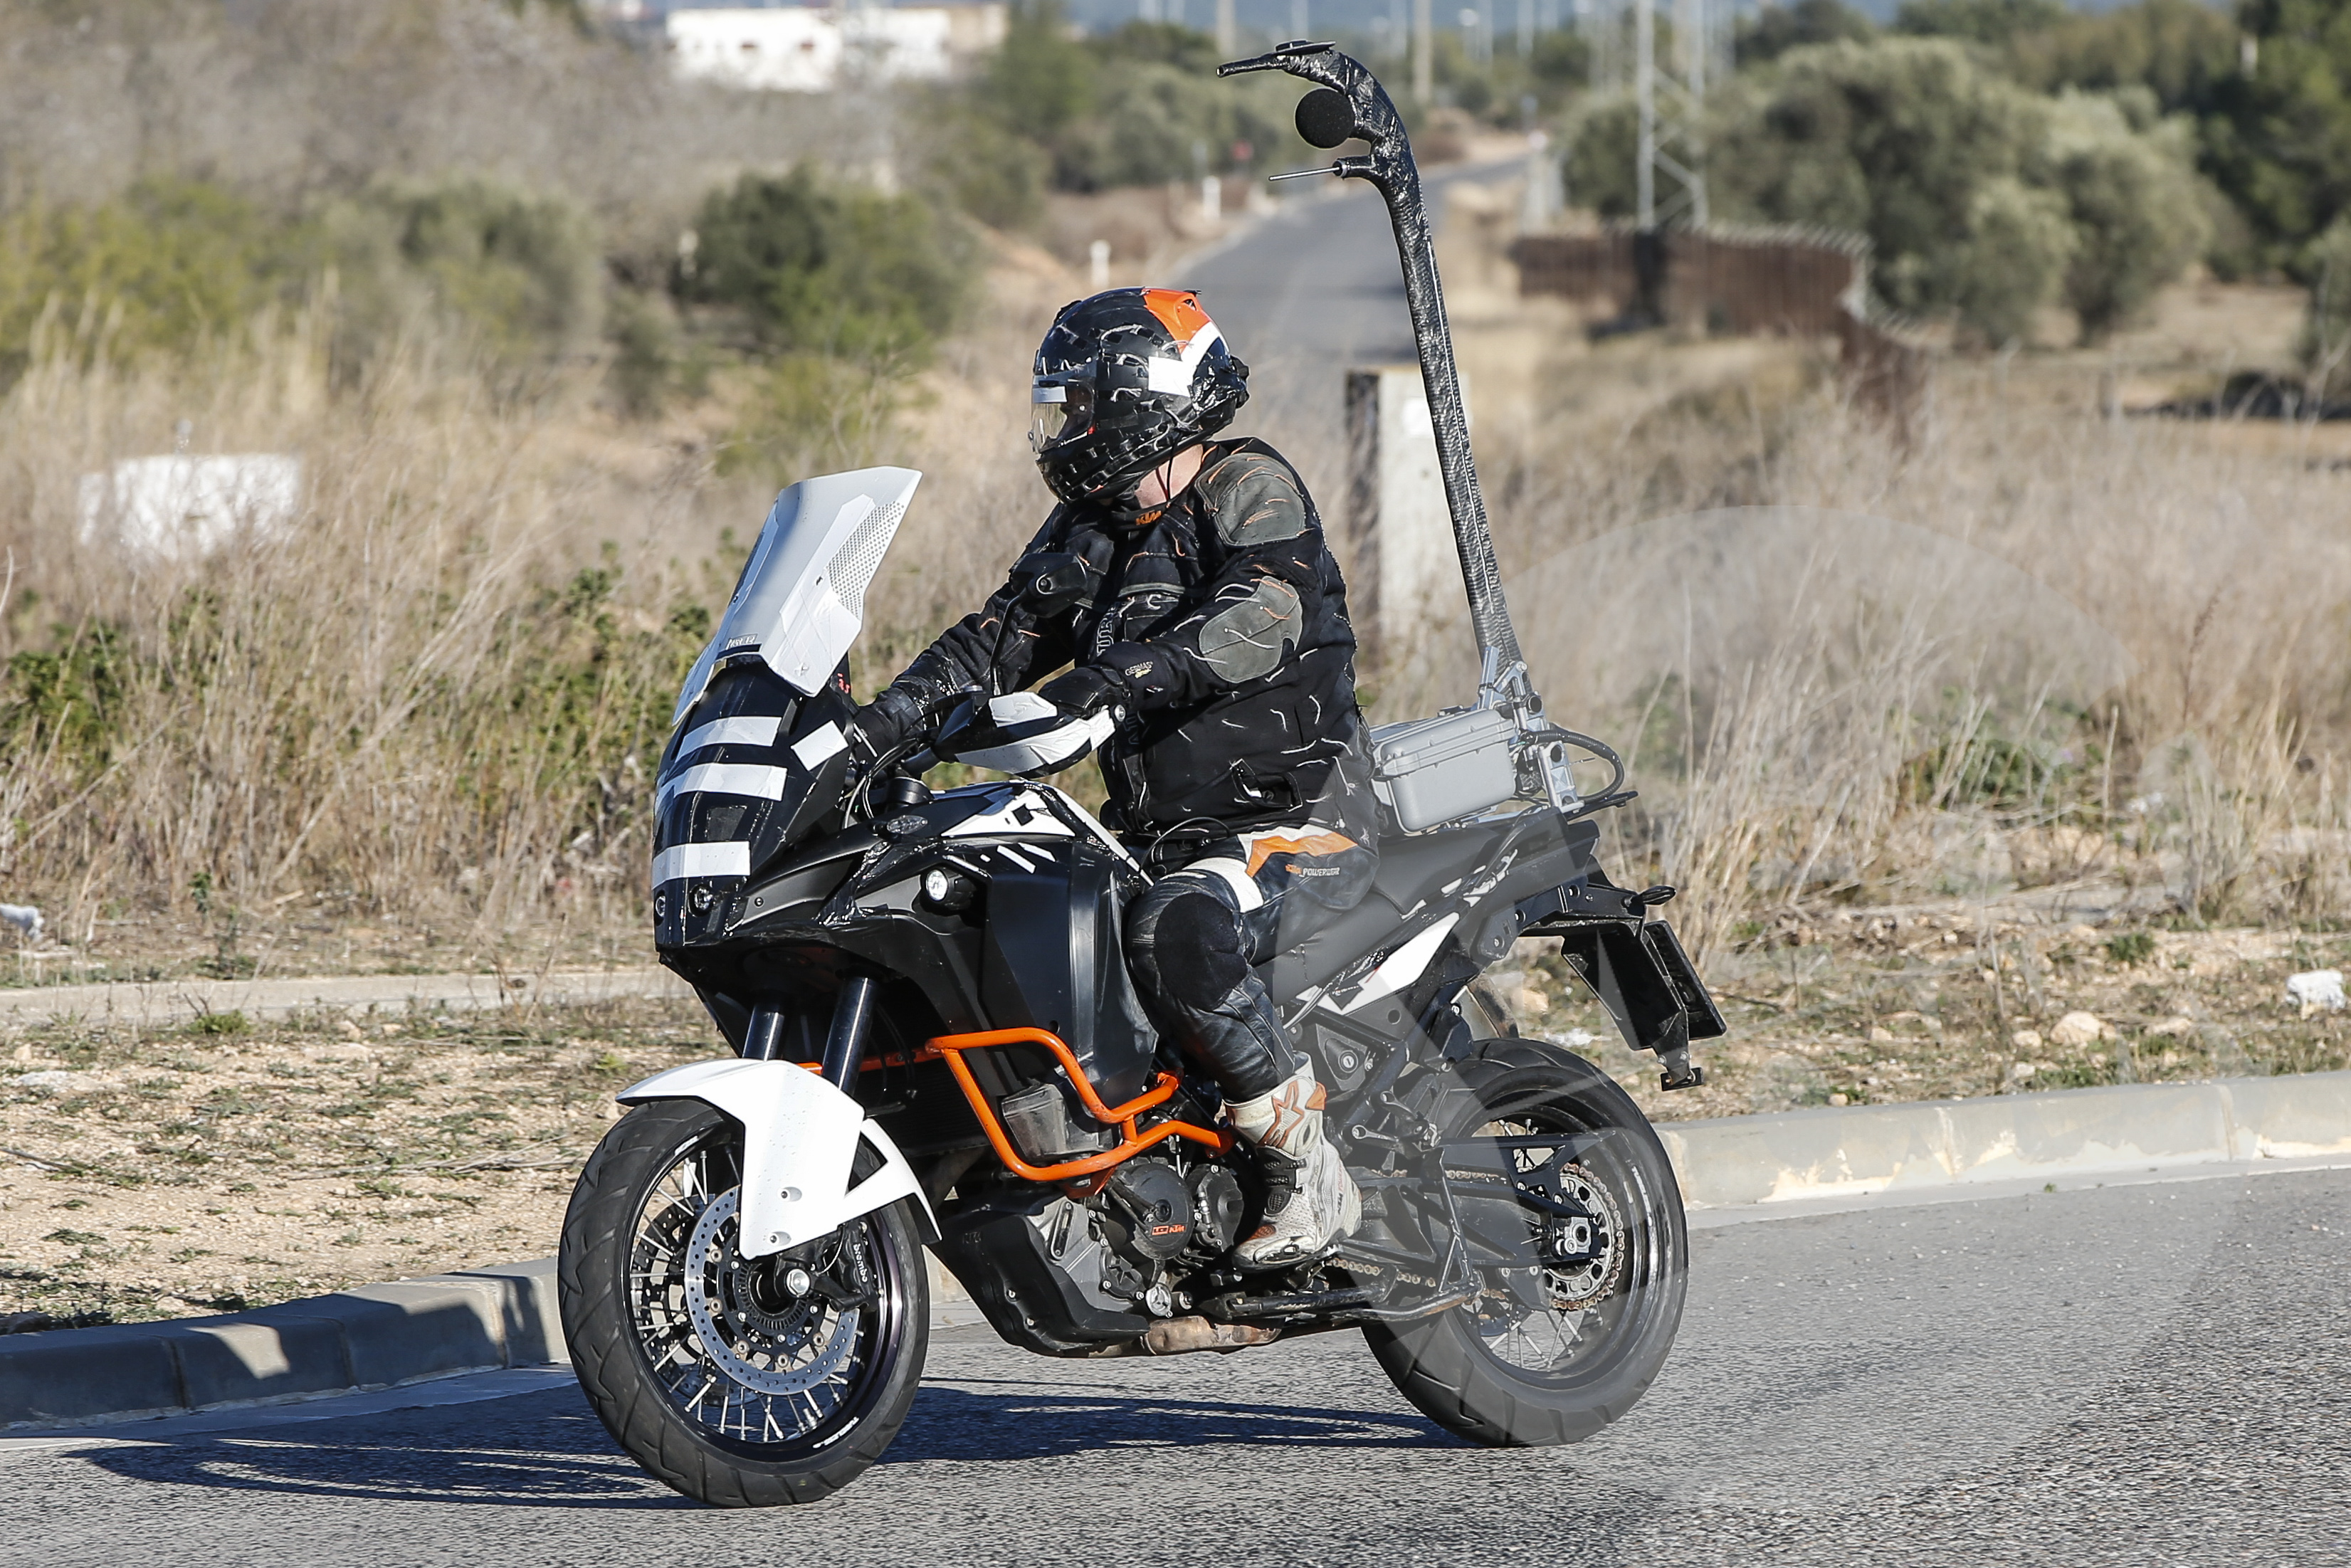 spy shot: face-lifted ktm 1290 super adv | visordown